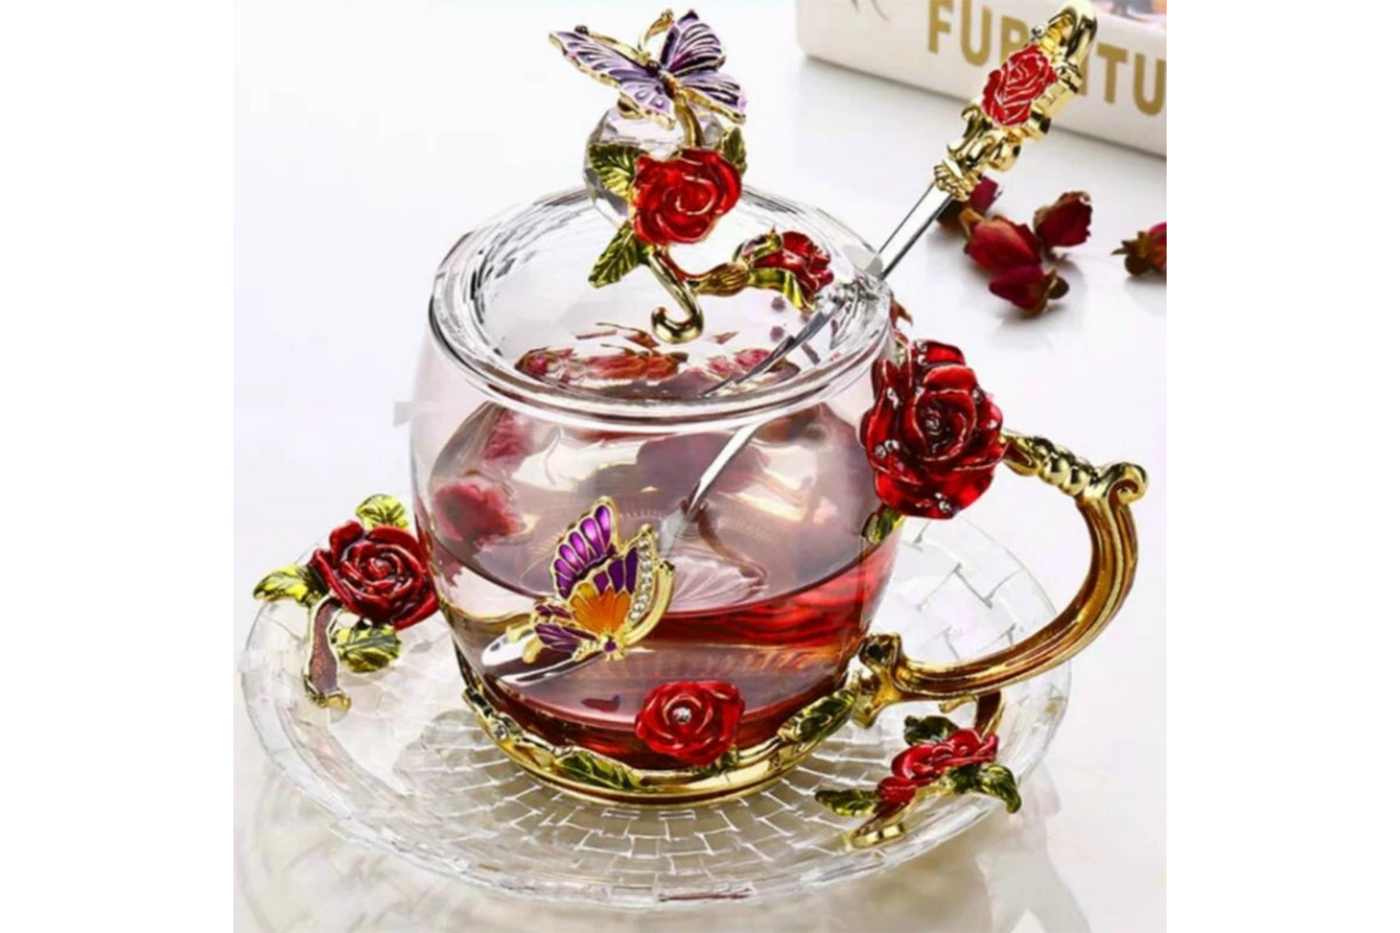 Transparent Glass Coffee Mugs with Hand-Made Luxurious Flower Designs